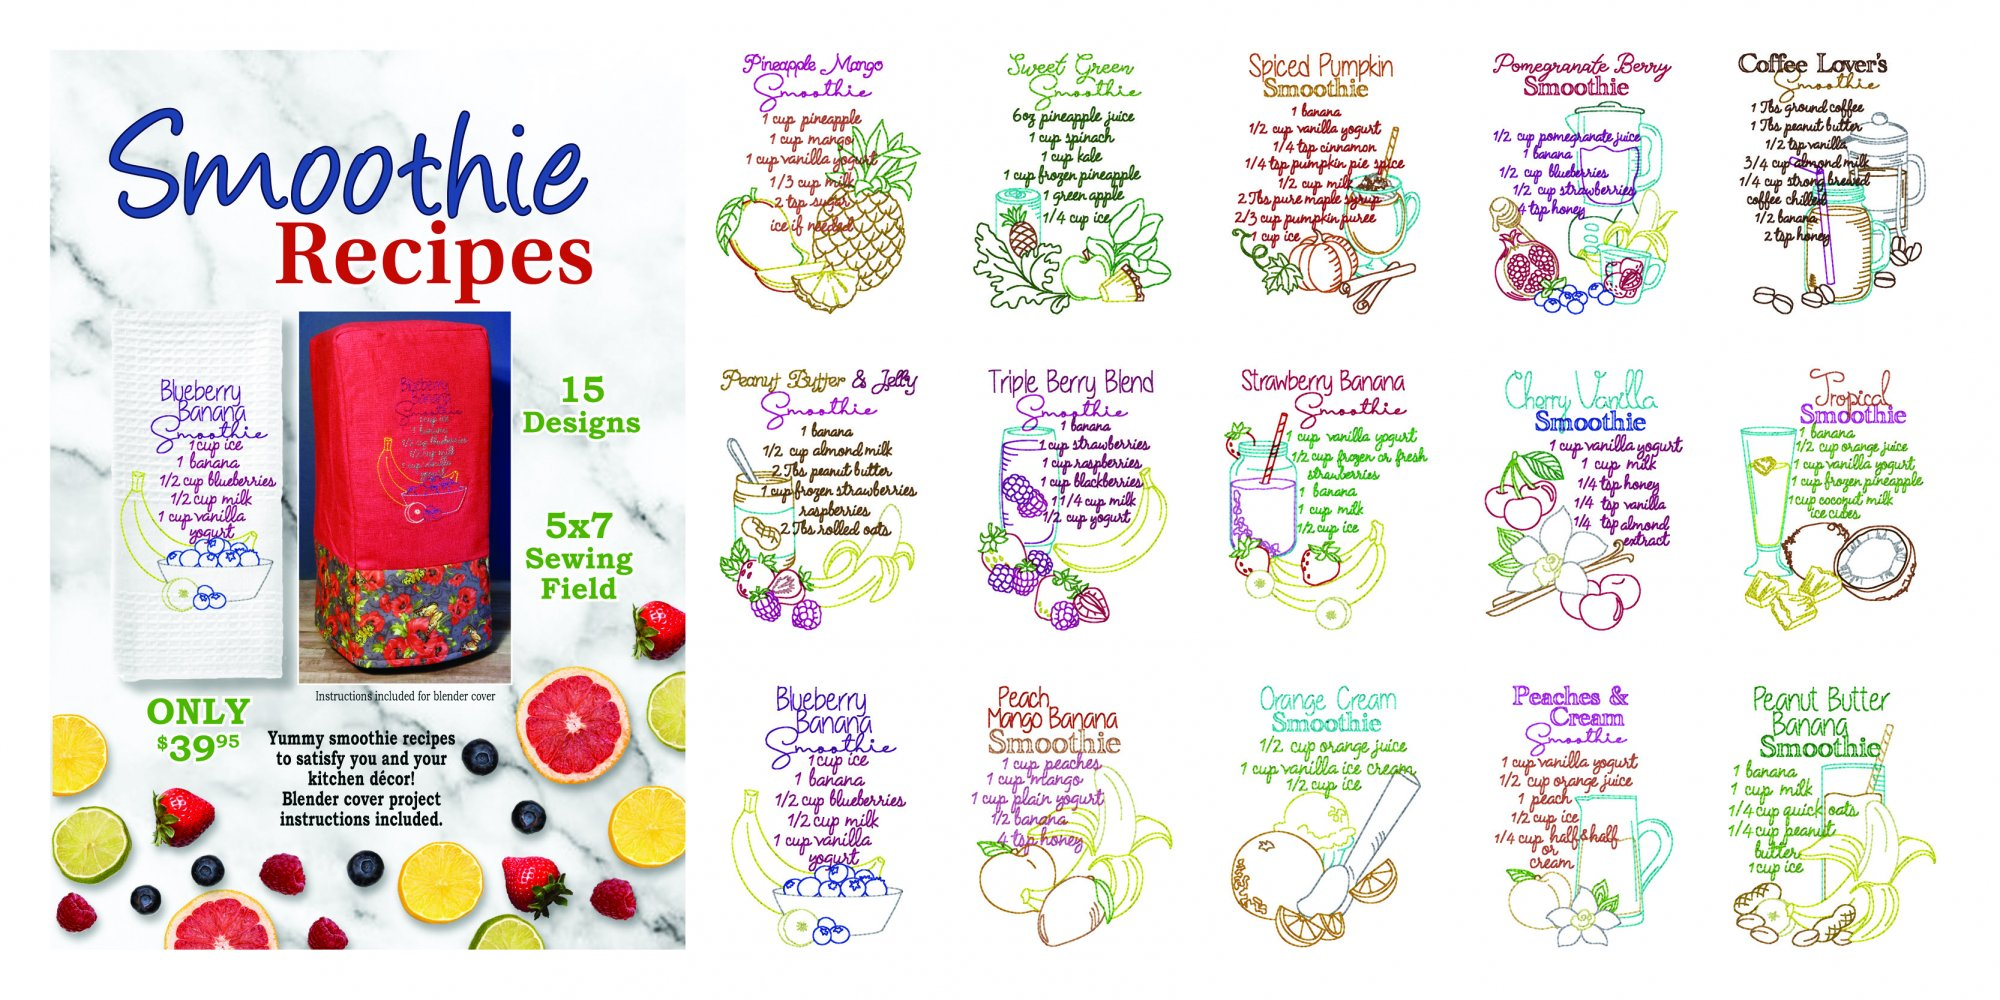 970801 Smoothie Recipes (5x7)